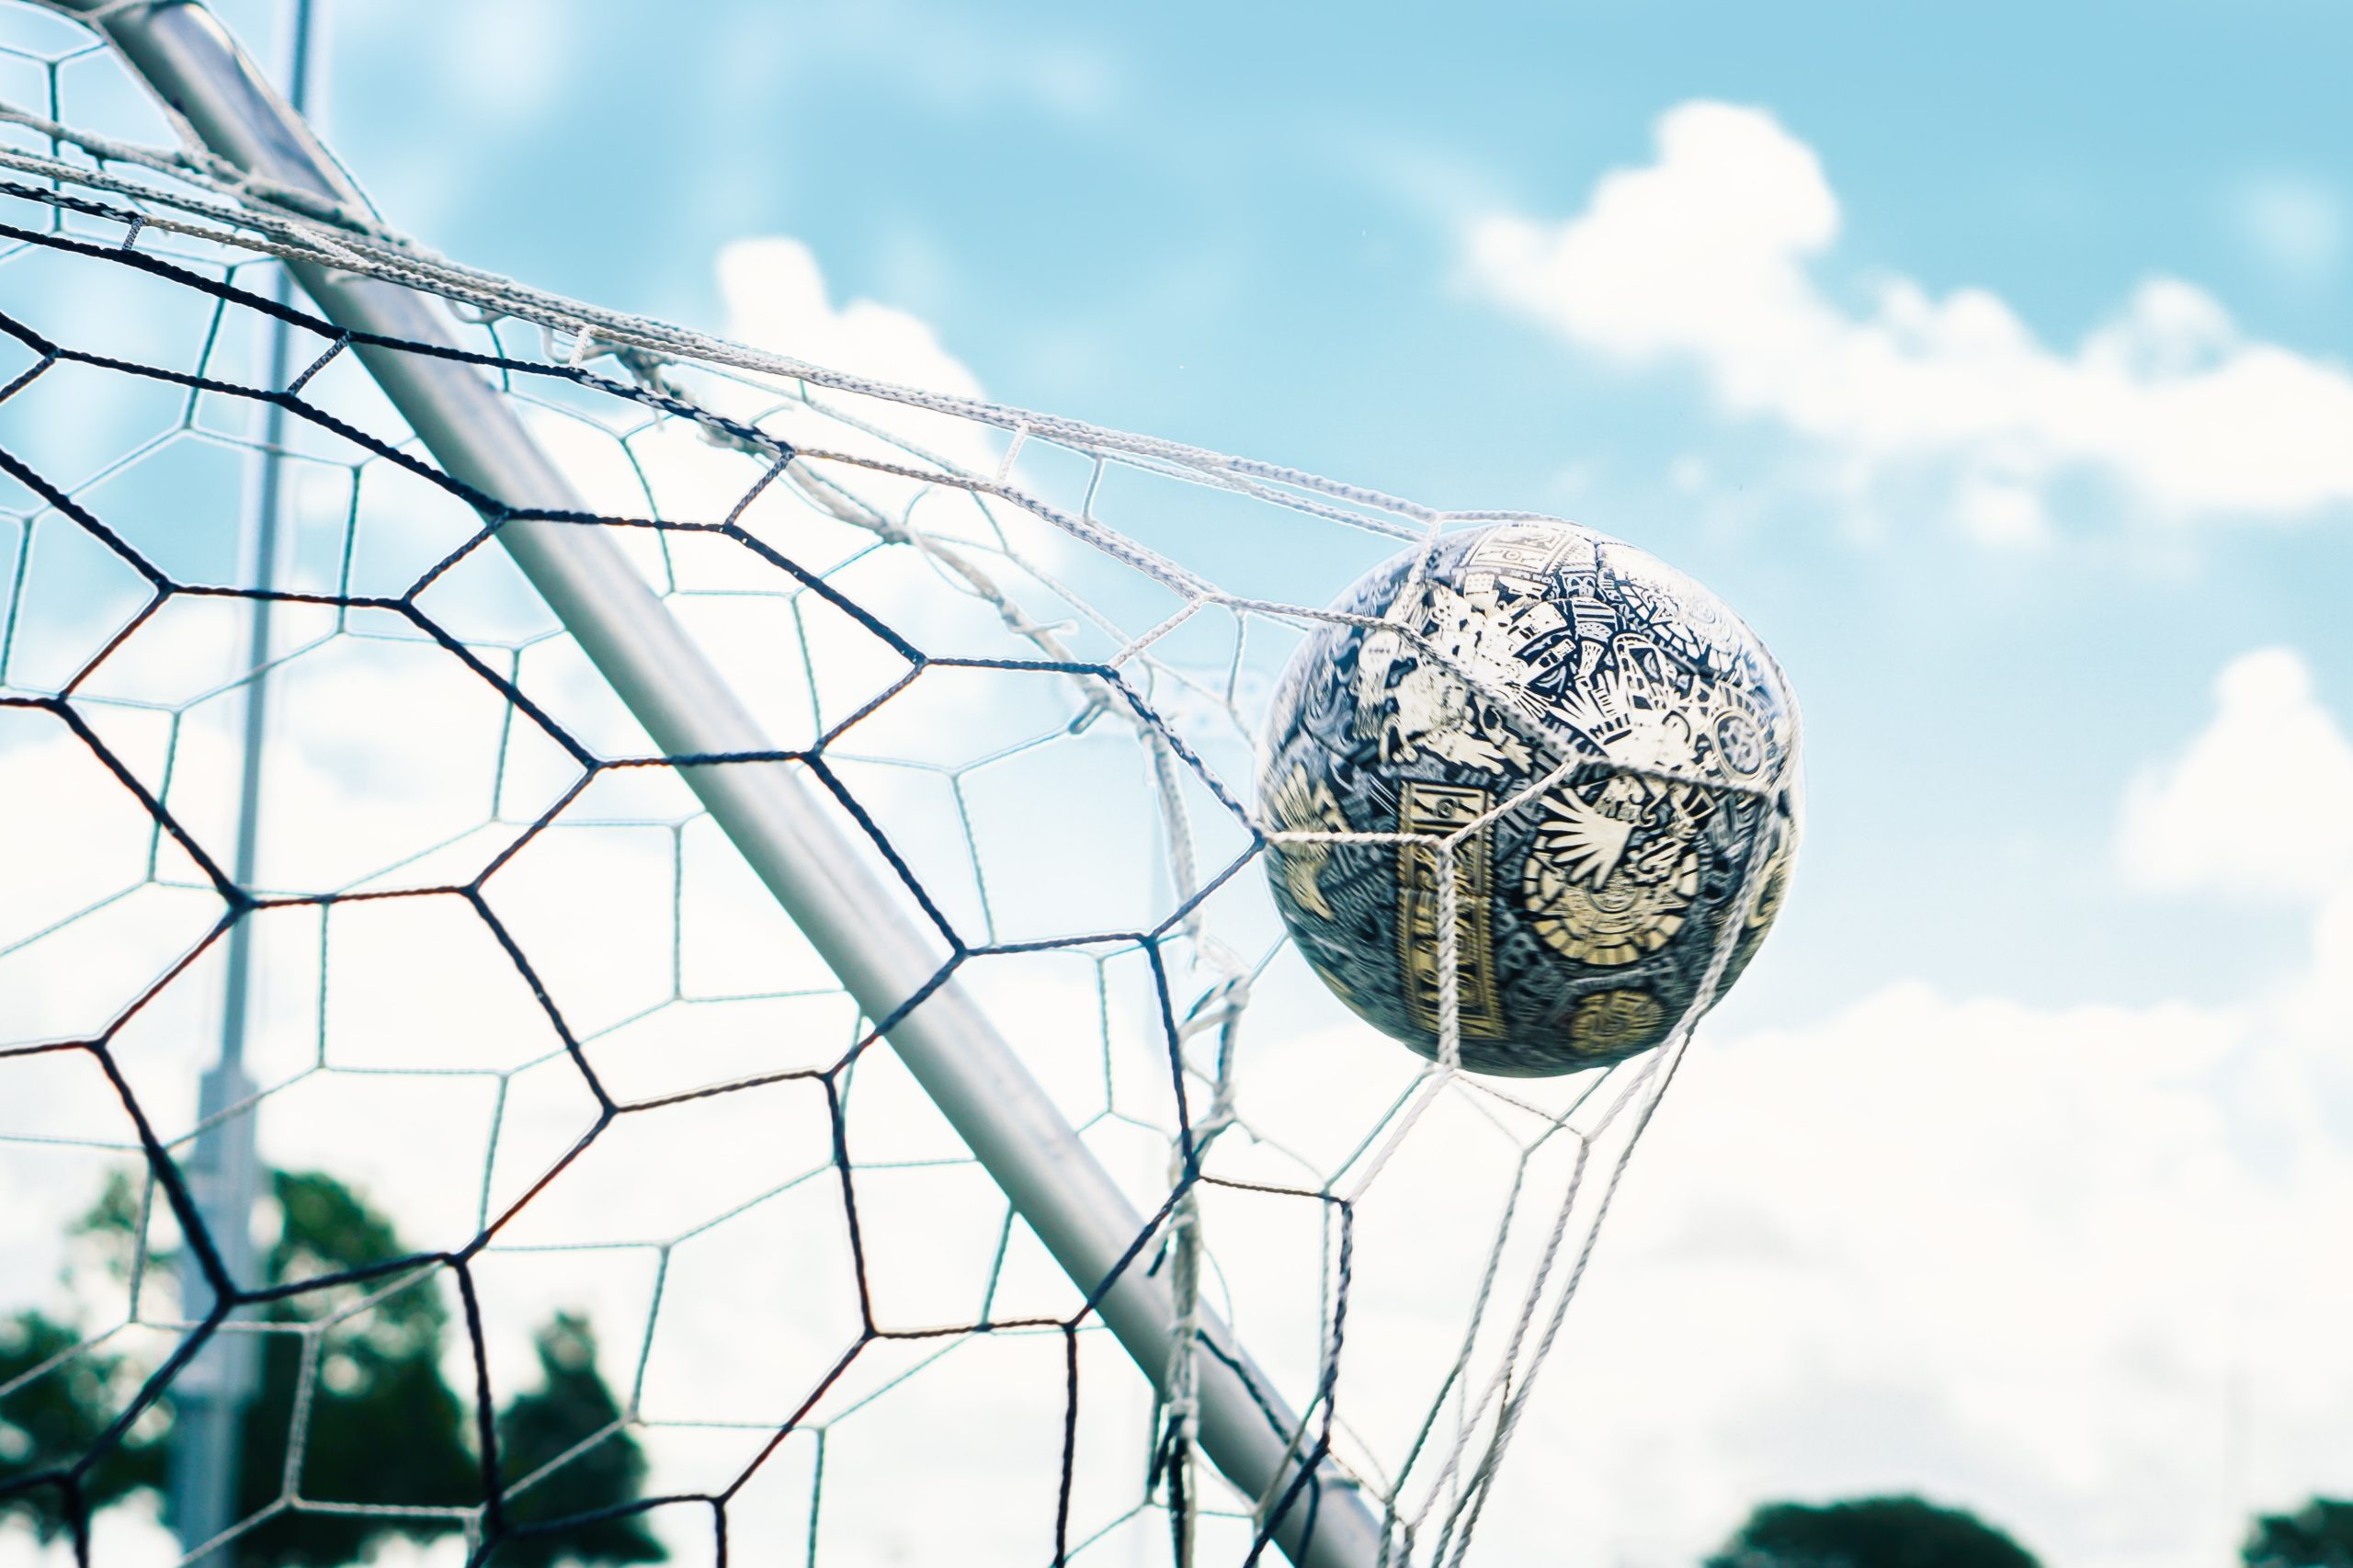 image courtesy of 'Chaos soccer gear' at Unsplash.com